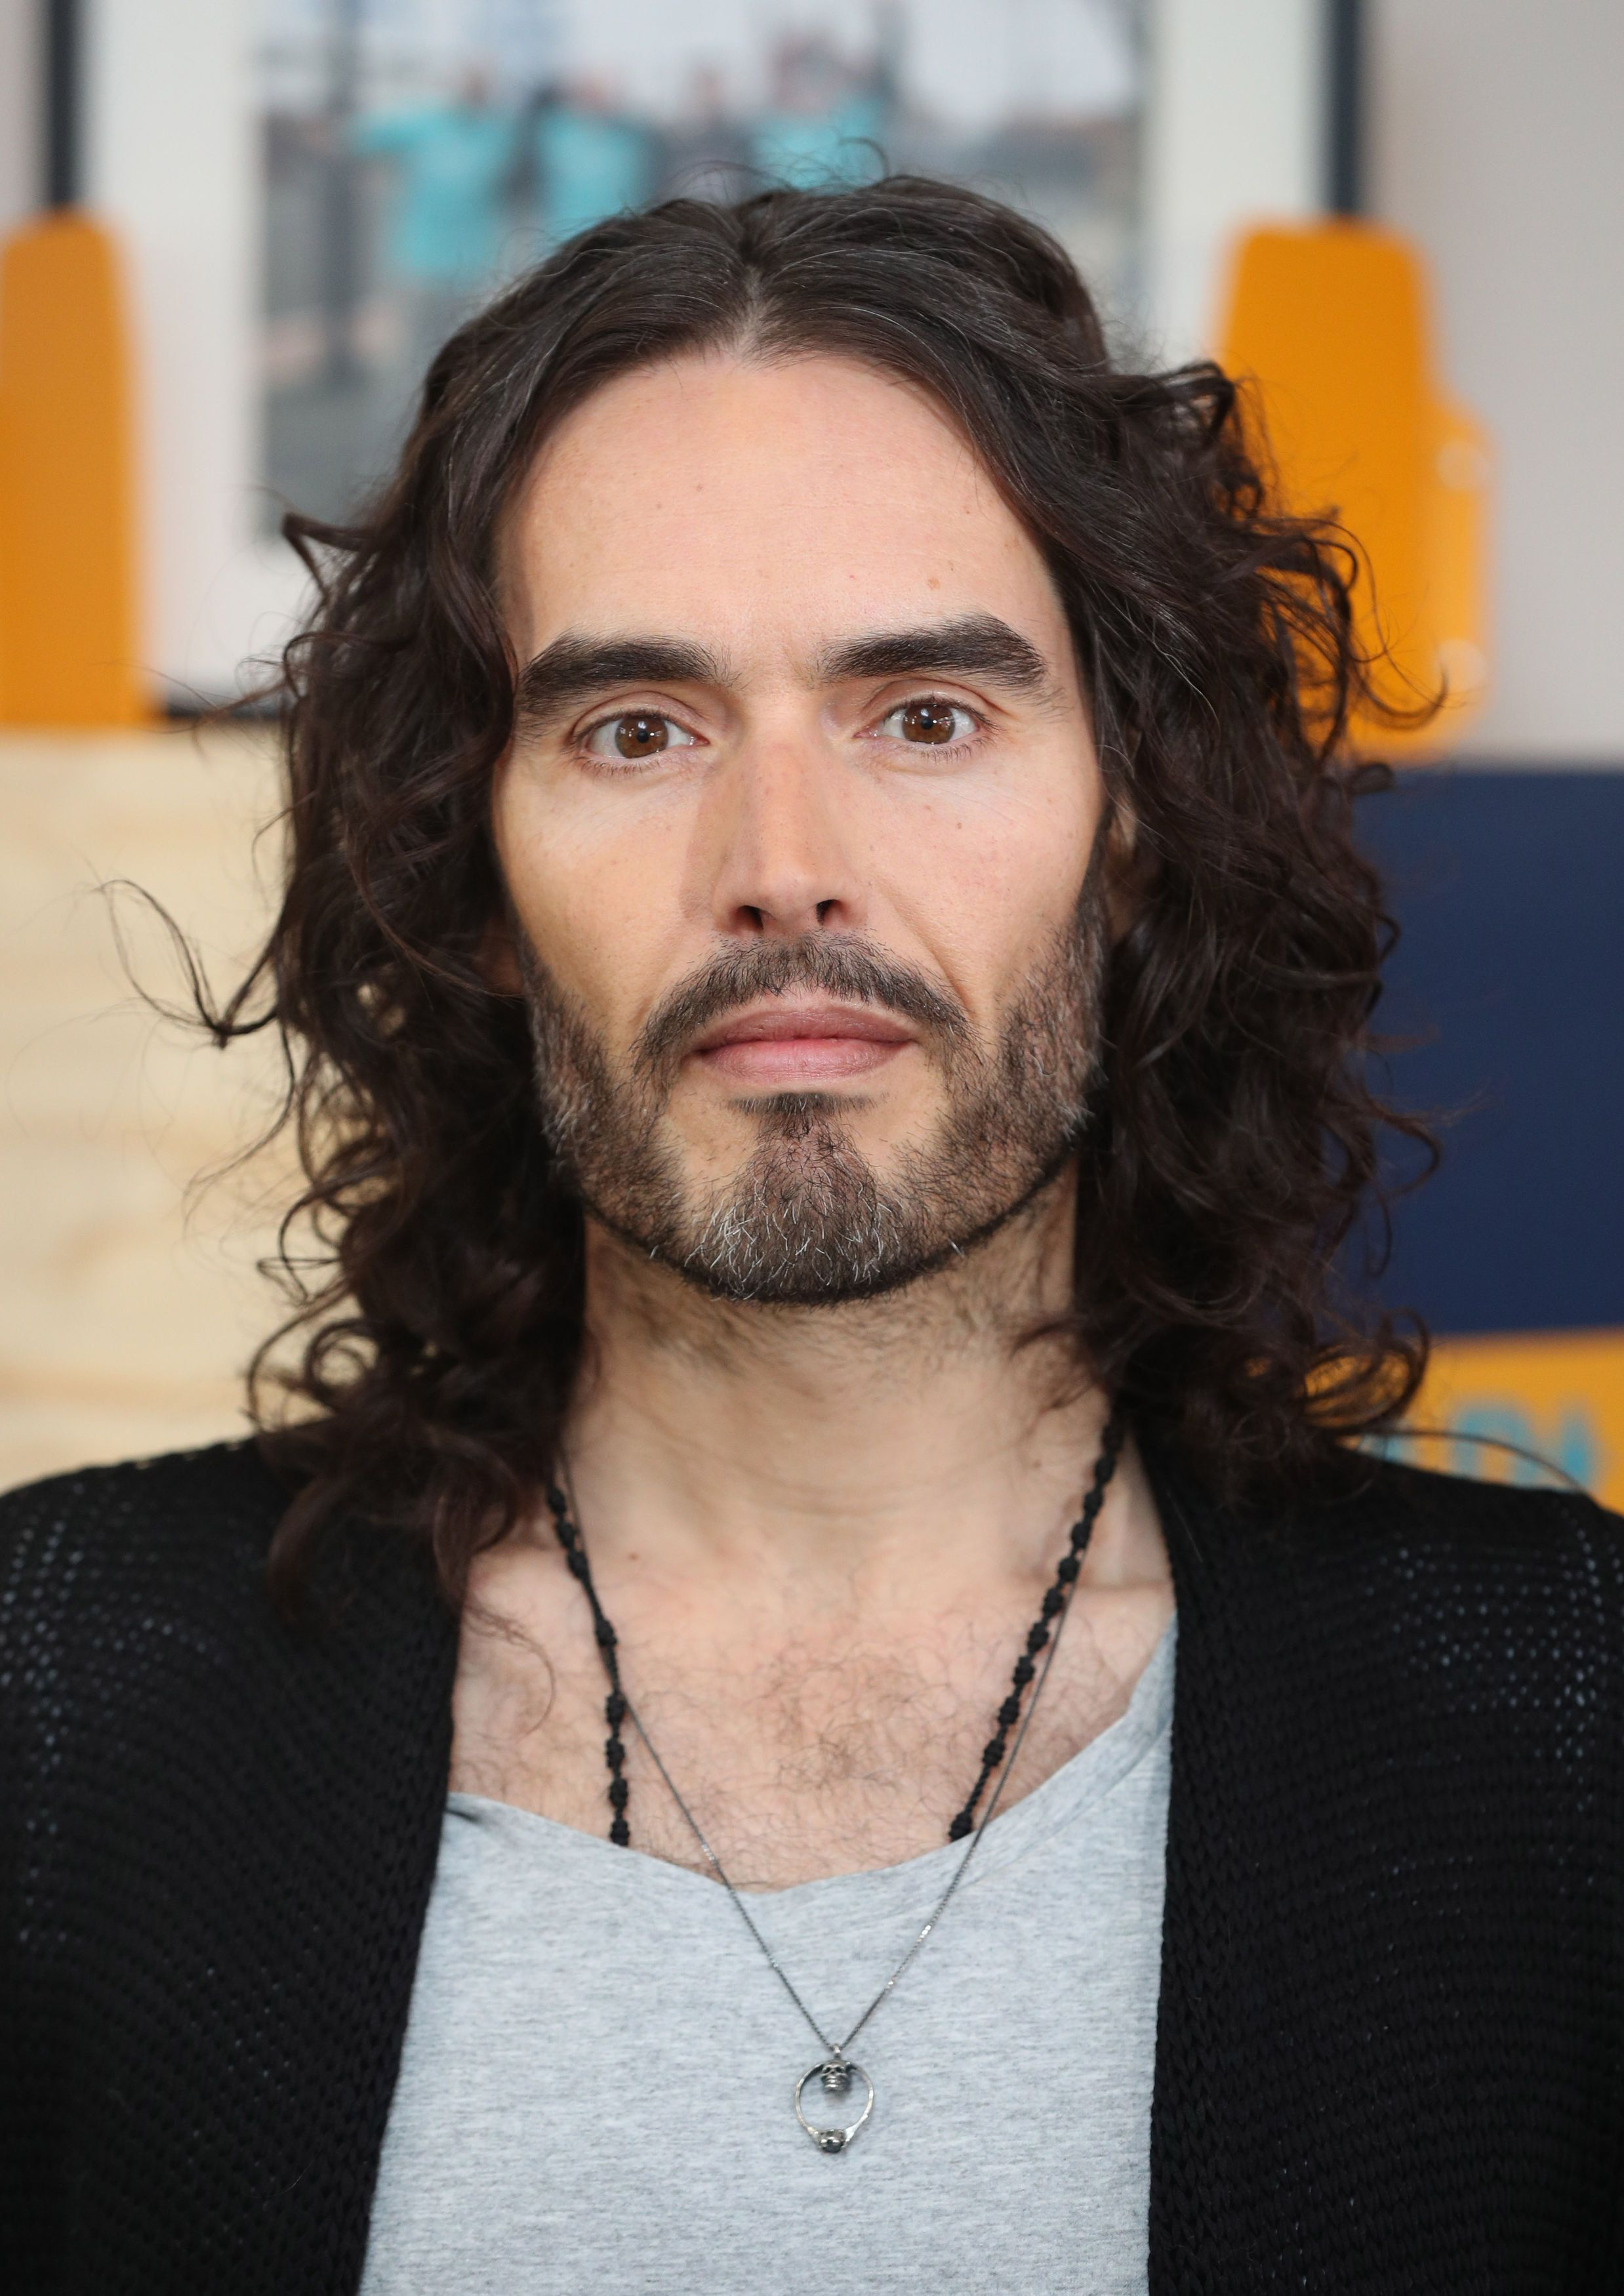 Russell Brand Claims Jeremy Corbyn's Policies Have 'Taken The Pressure Off Everyone